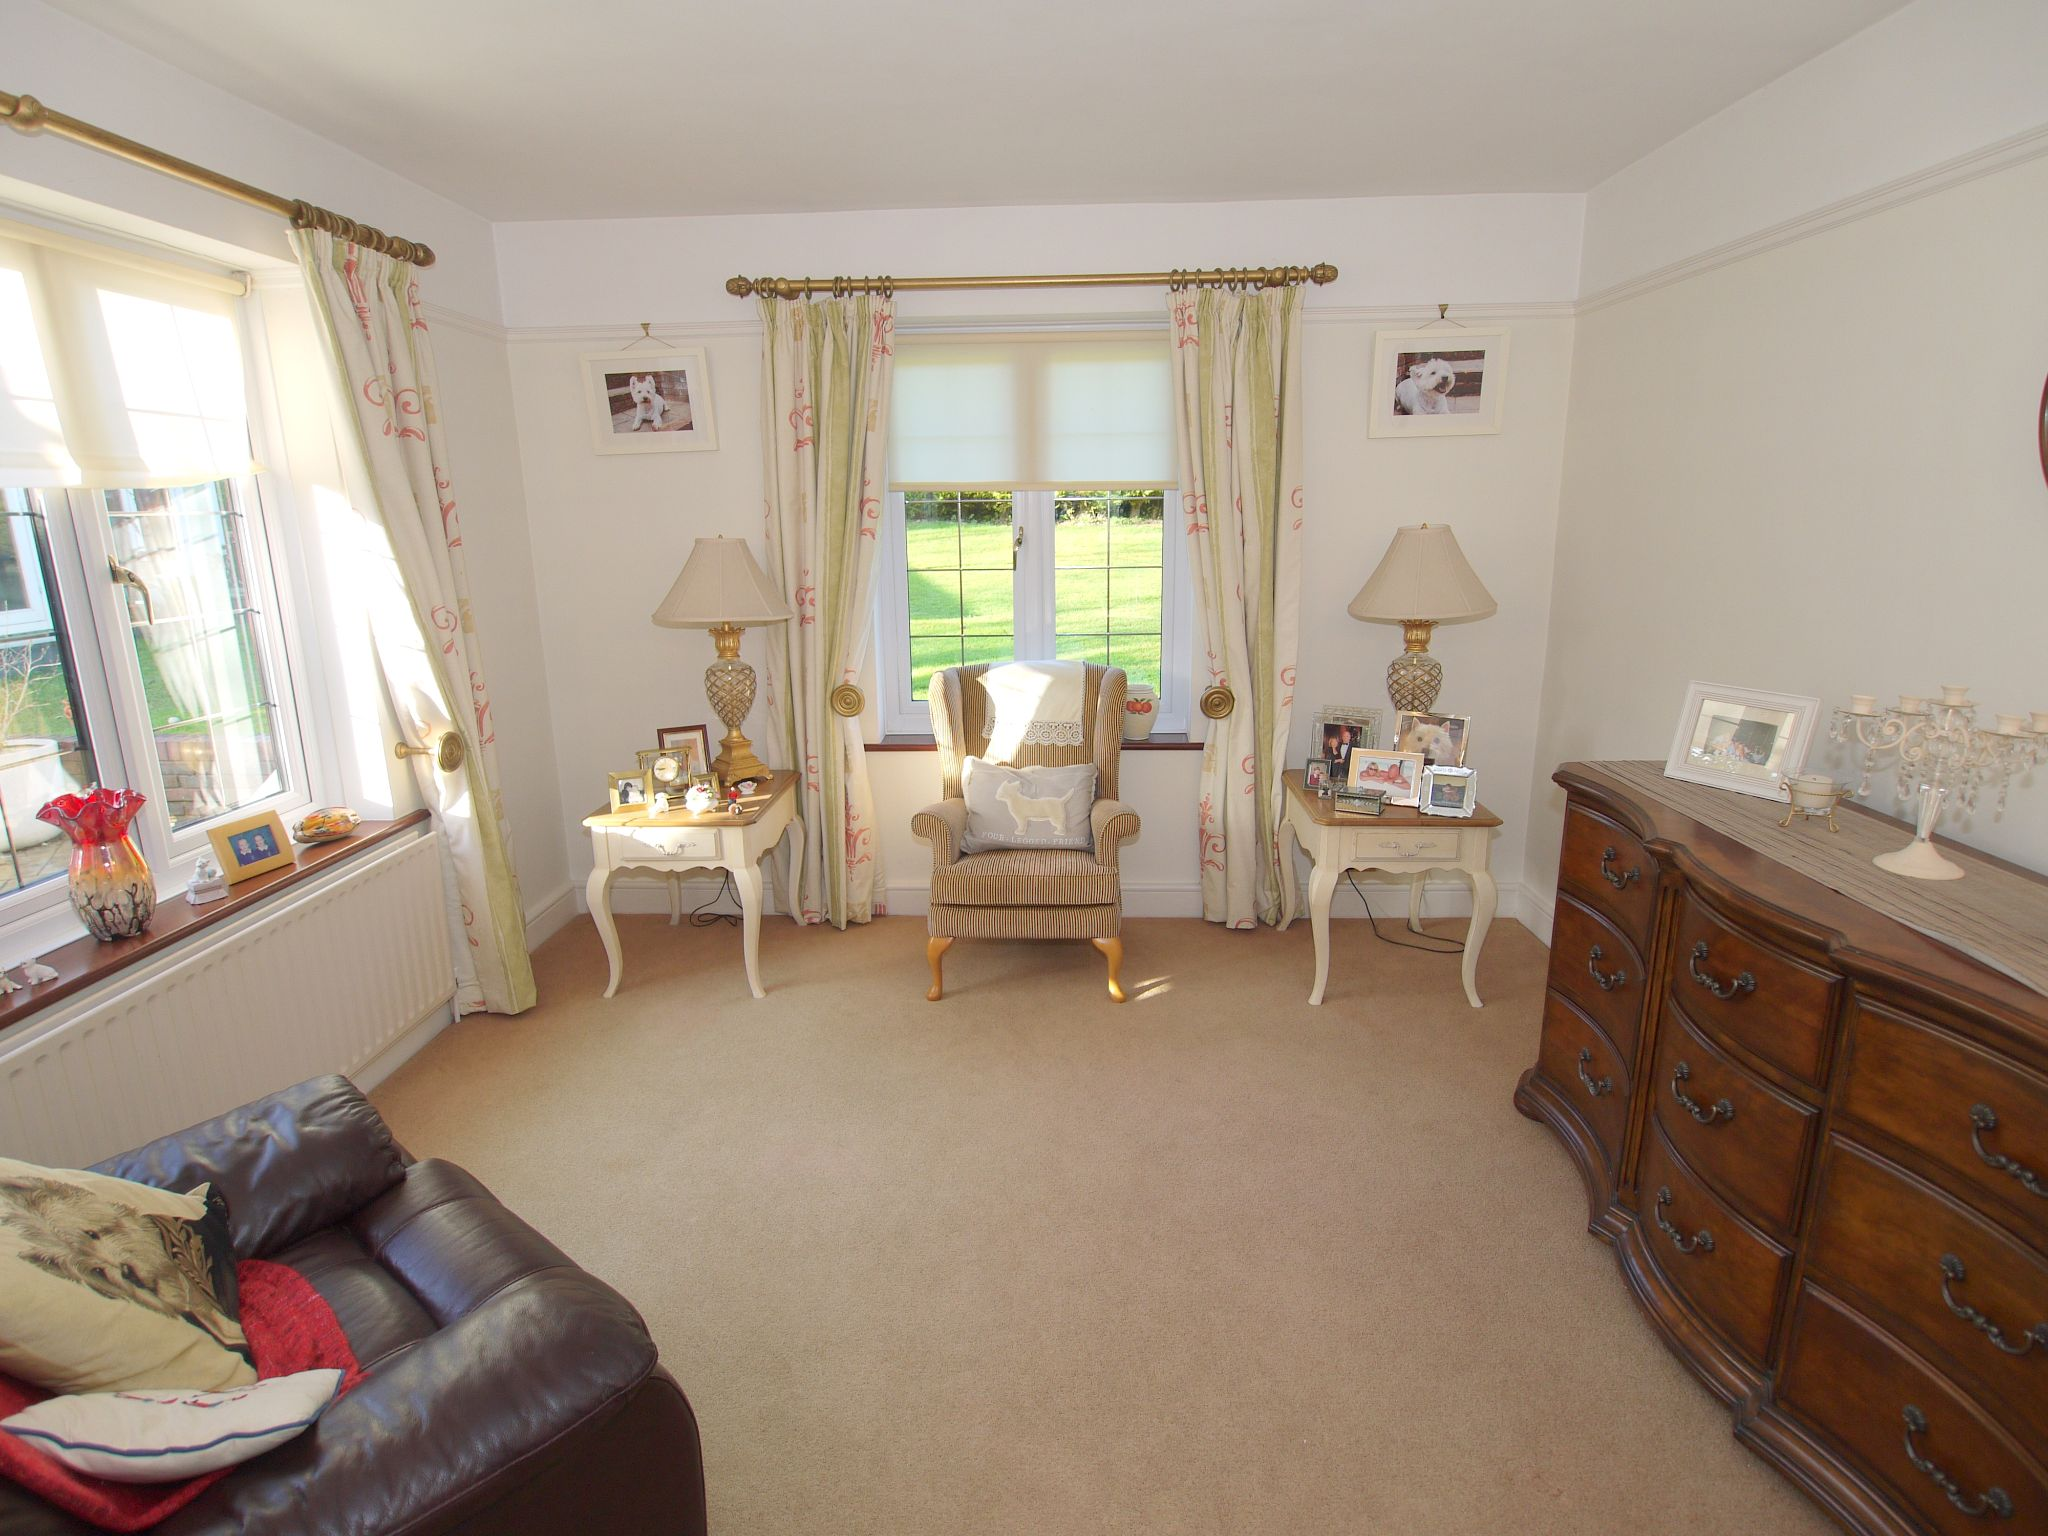 4 bedroom detached house For Sale in Farningham - Photograph 12